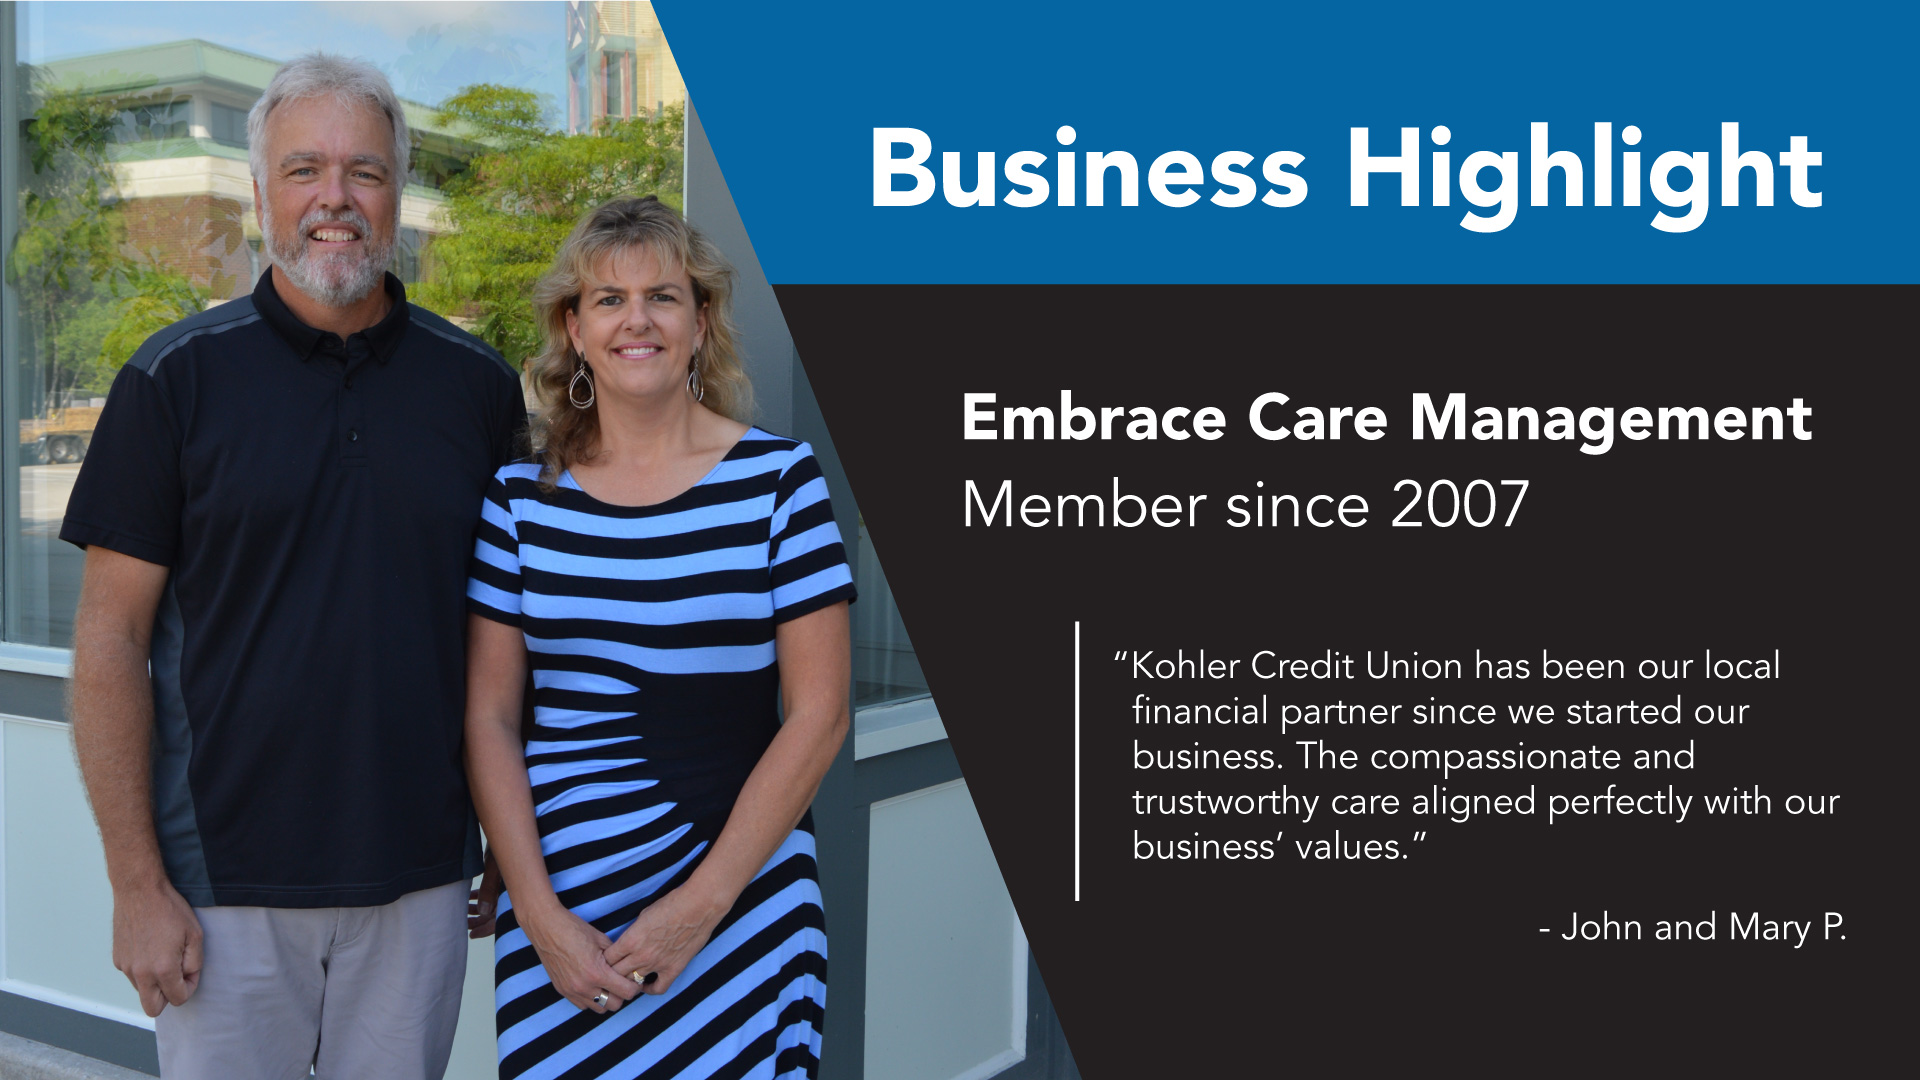 Business Highlight Embrace Care Management